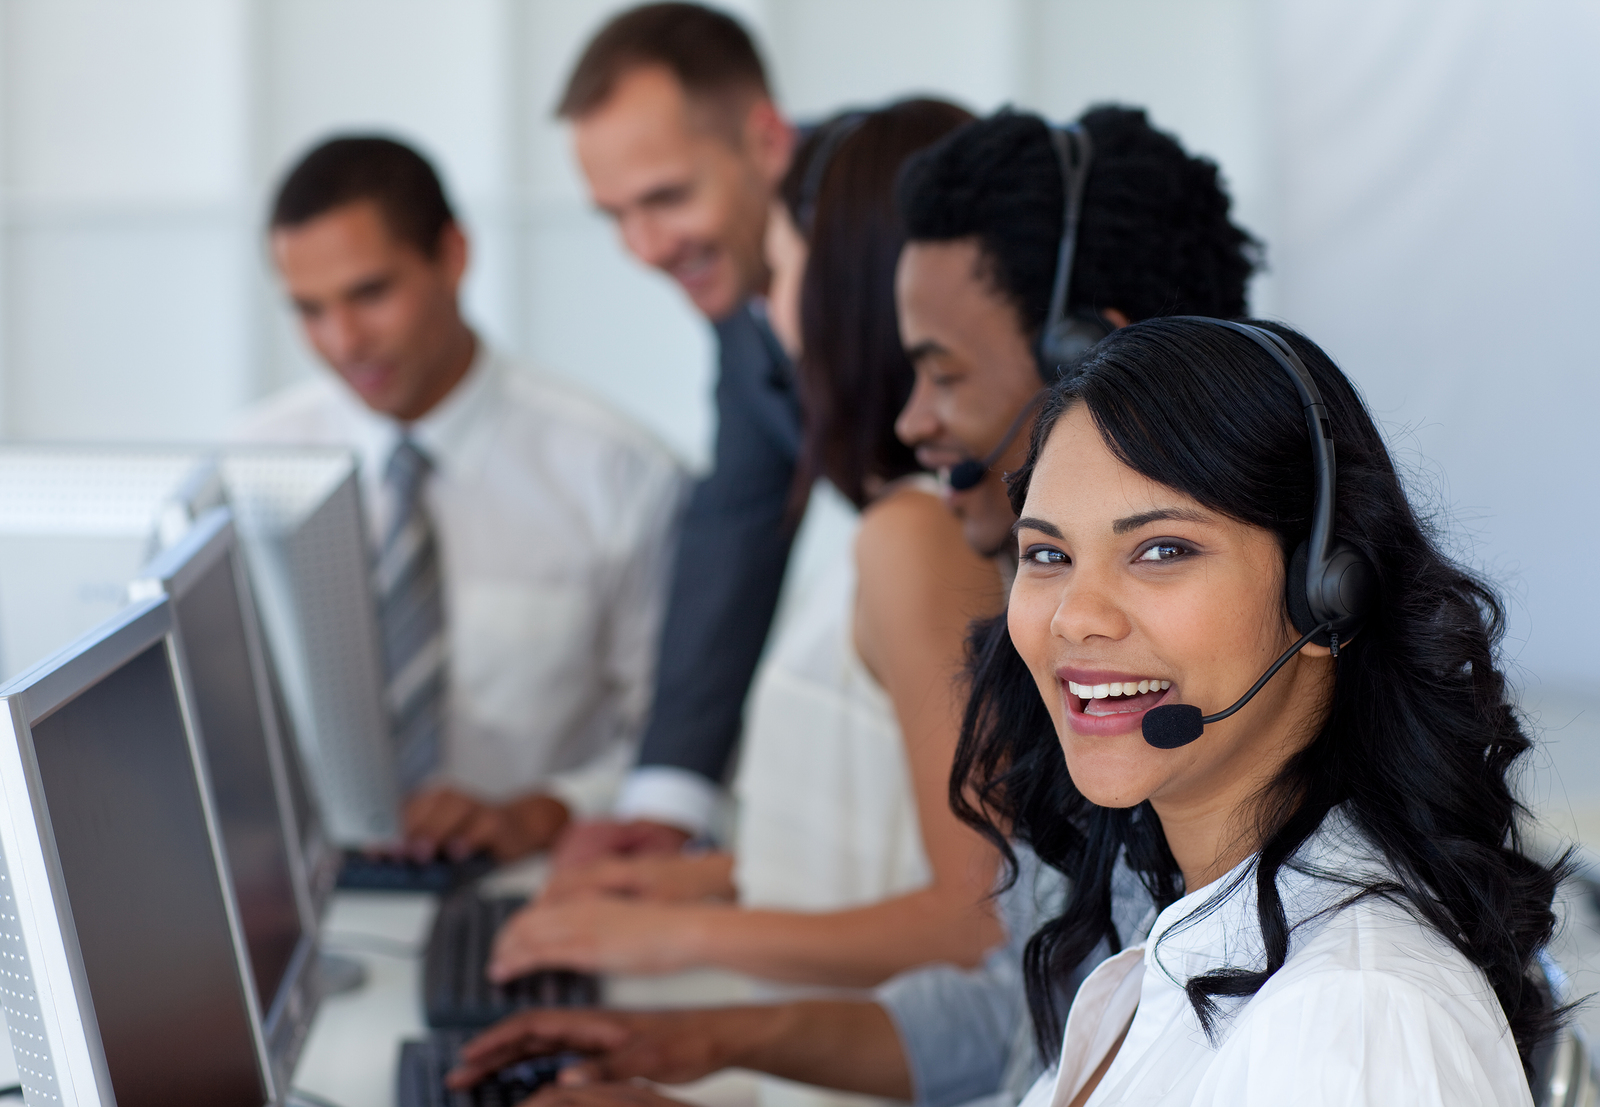 Live support to help you find the best discounted rates possible.